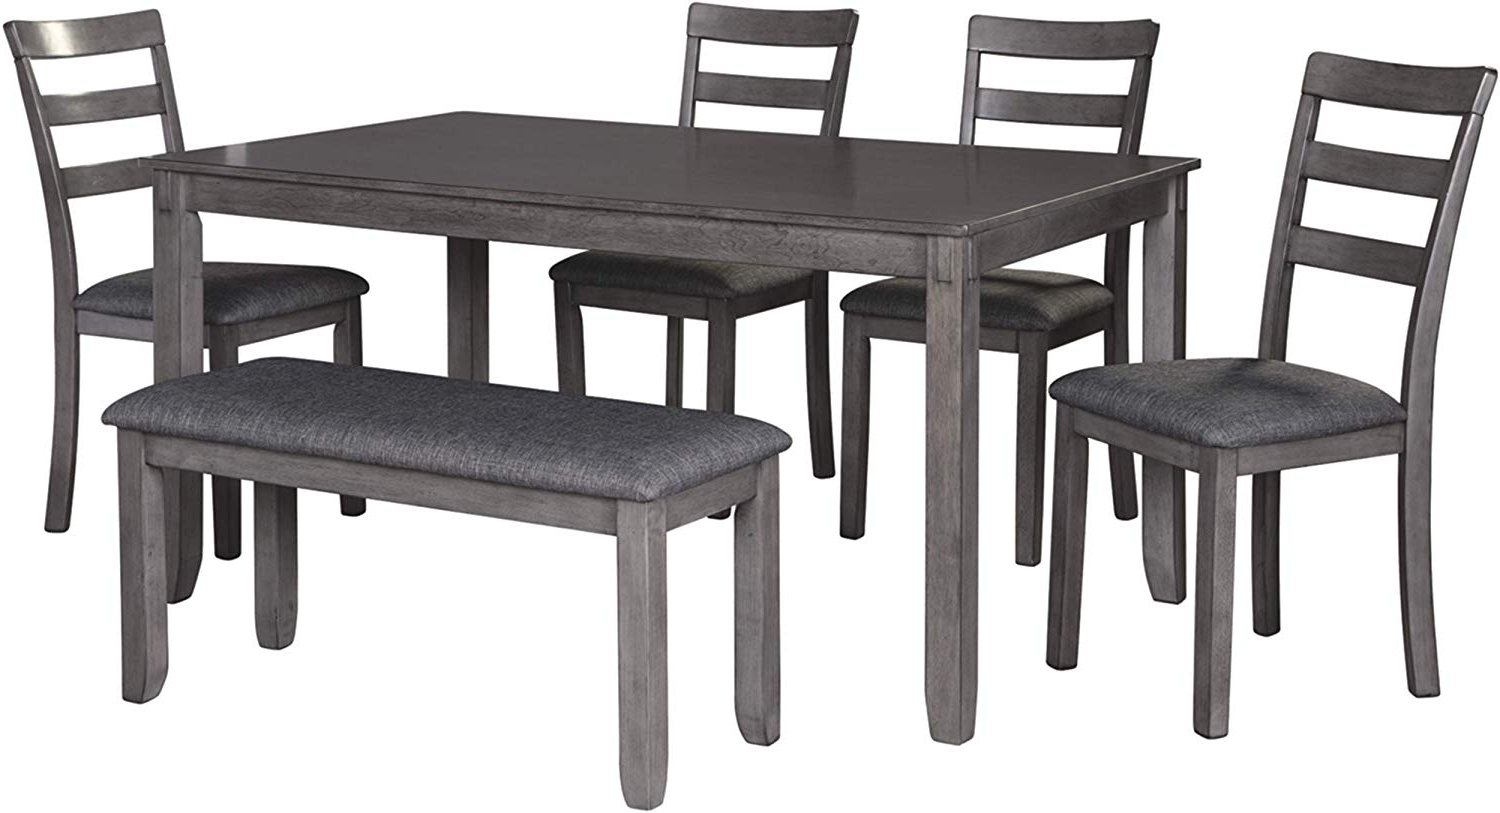 2018 Transitional 6 Seating Casual Dining Tables Regarding Signature Designashley Bridson Dining Table, Gray (View 4 of 30)